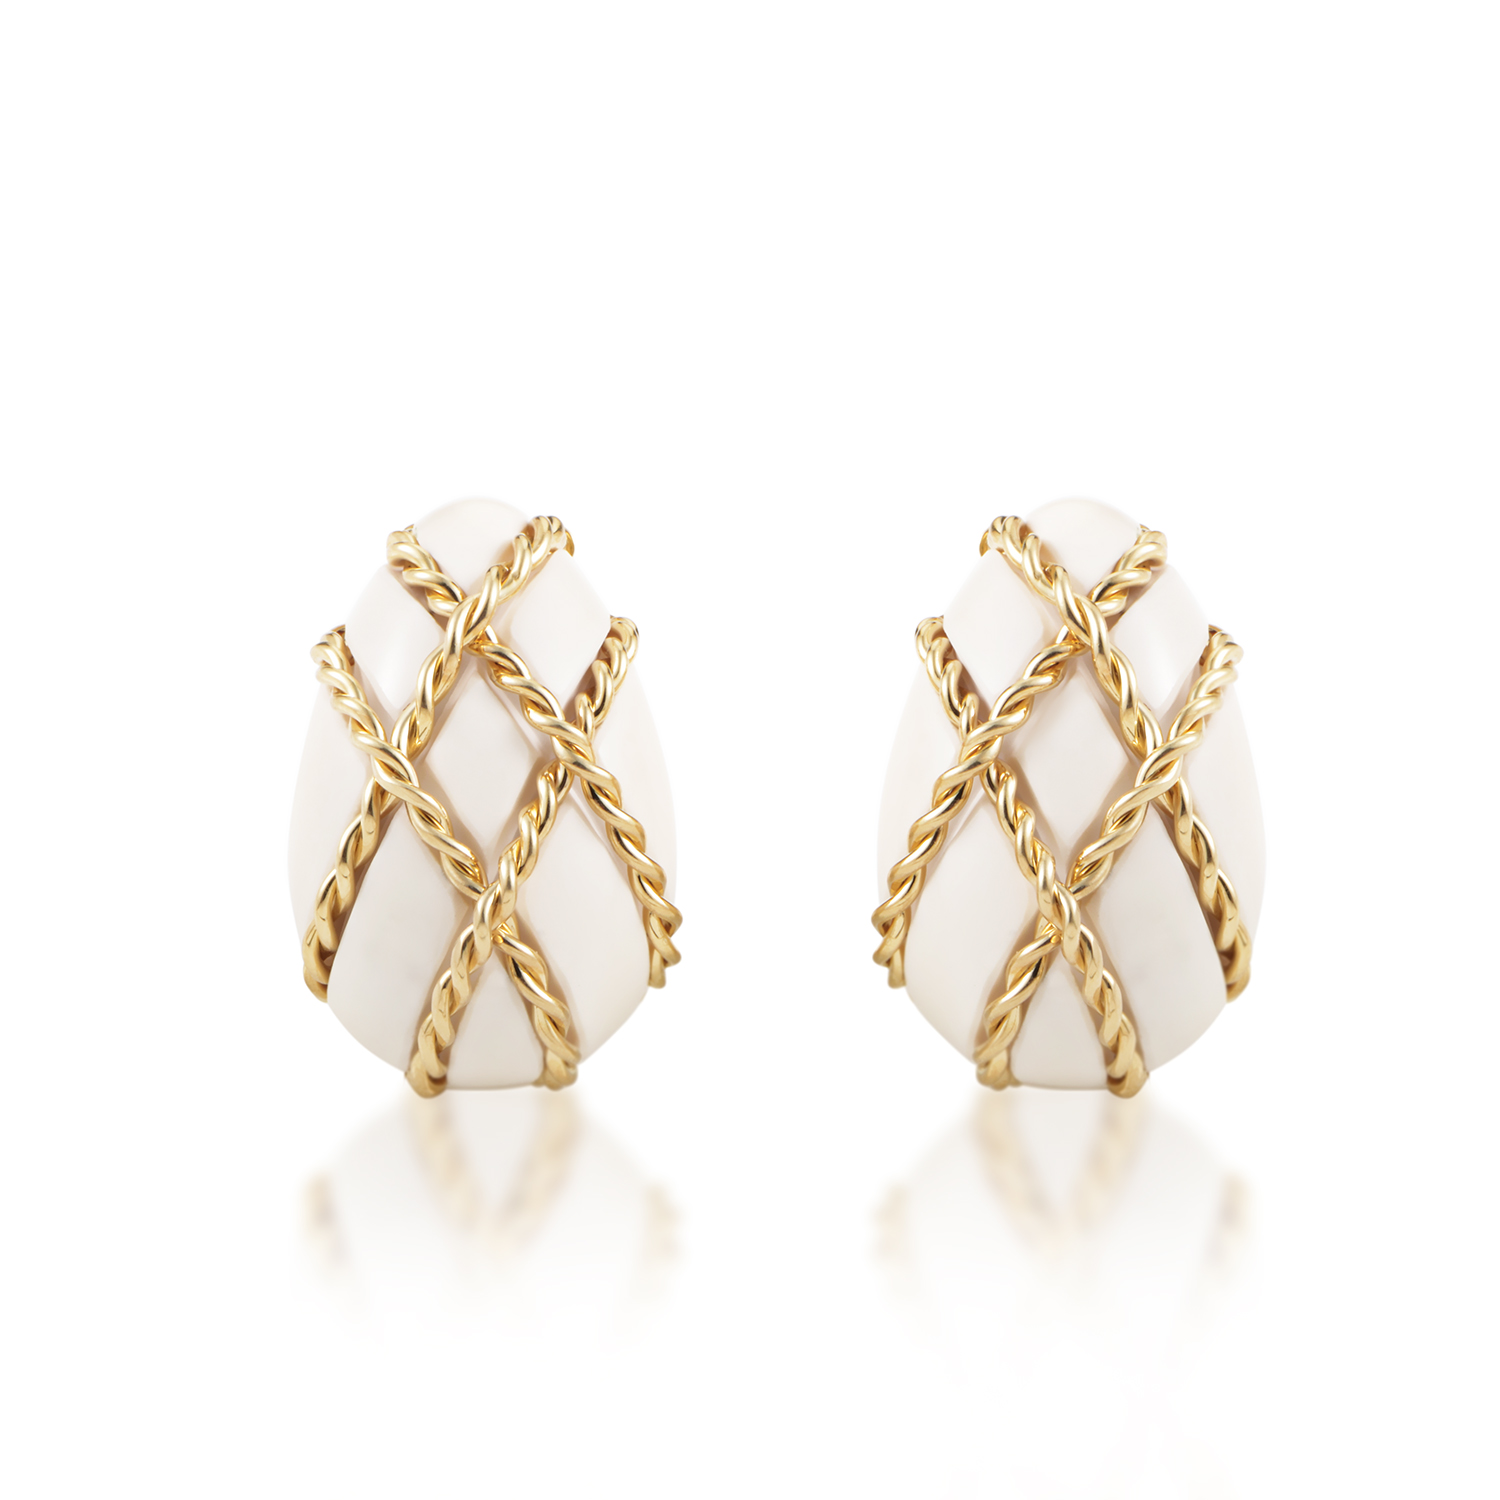 Seaman Schepps 18K Yellow Gold & White Coral Lattice Clip-on Earrings